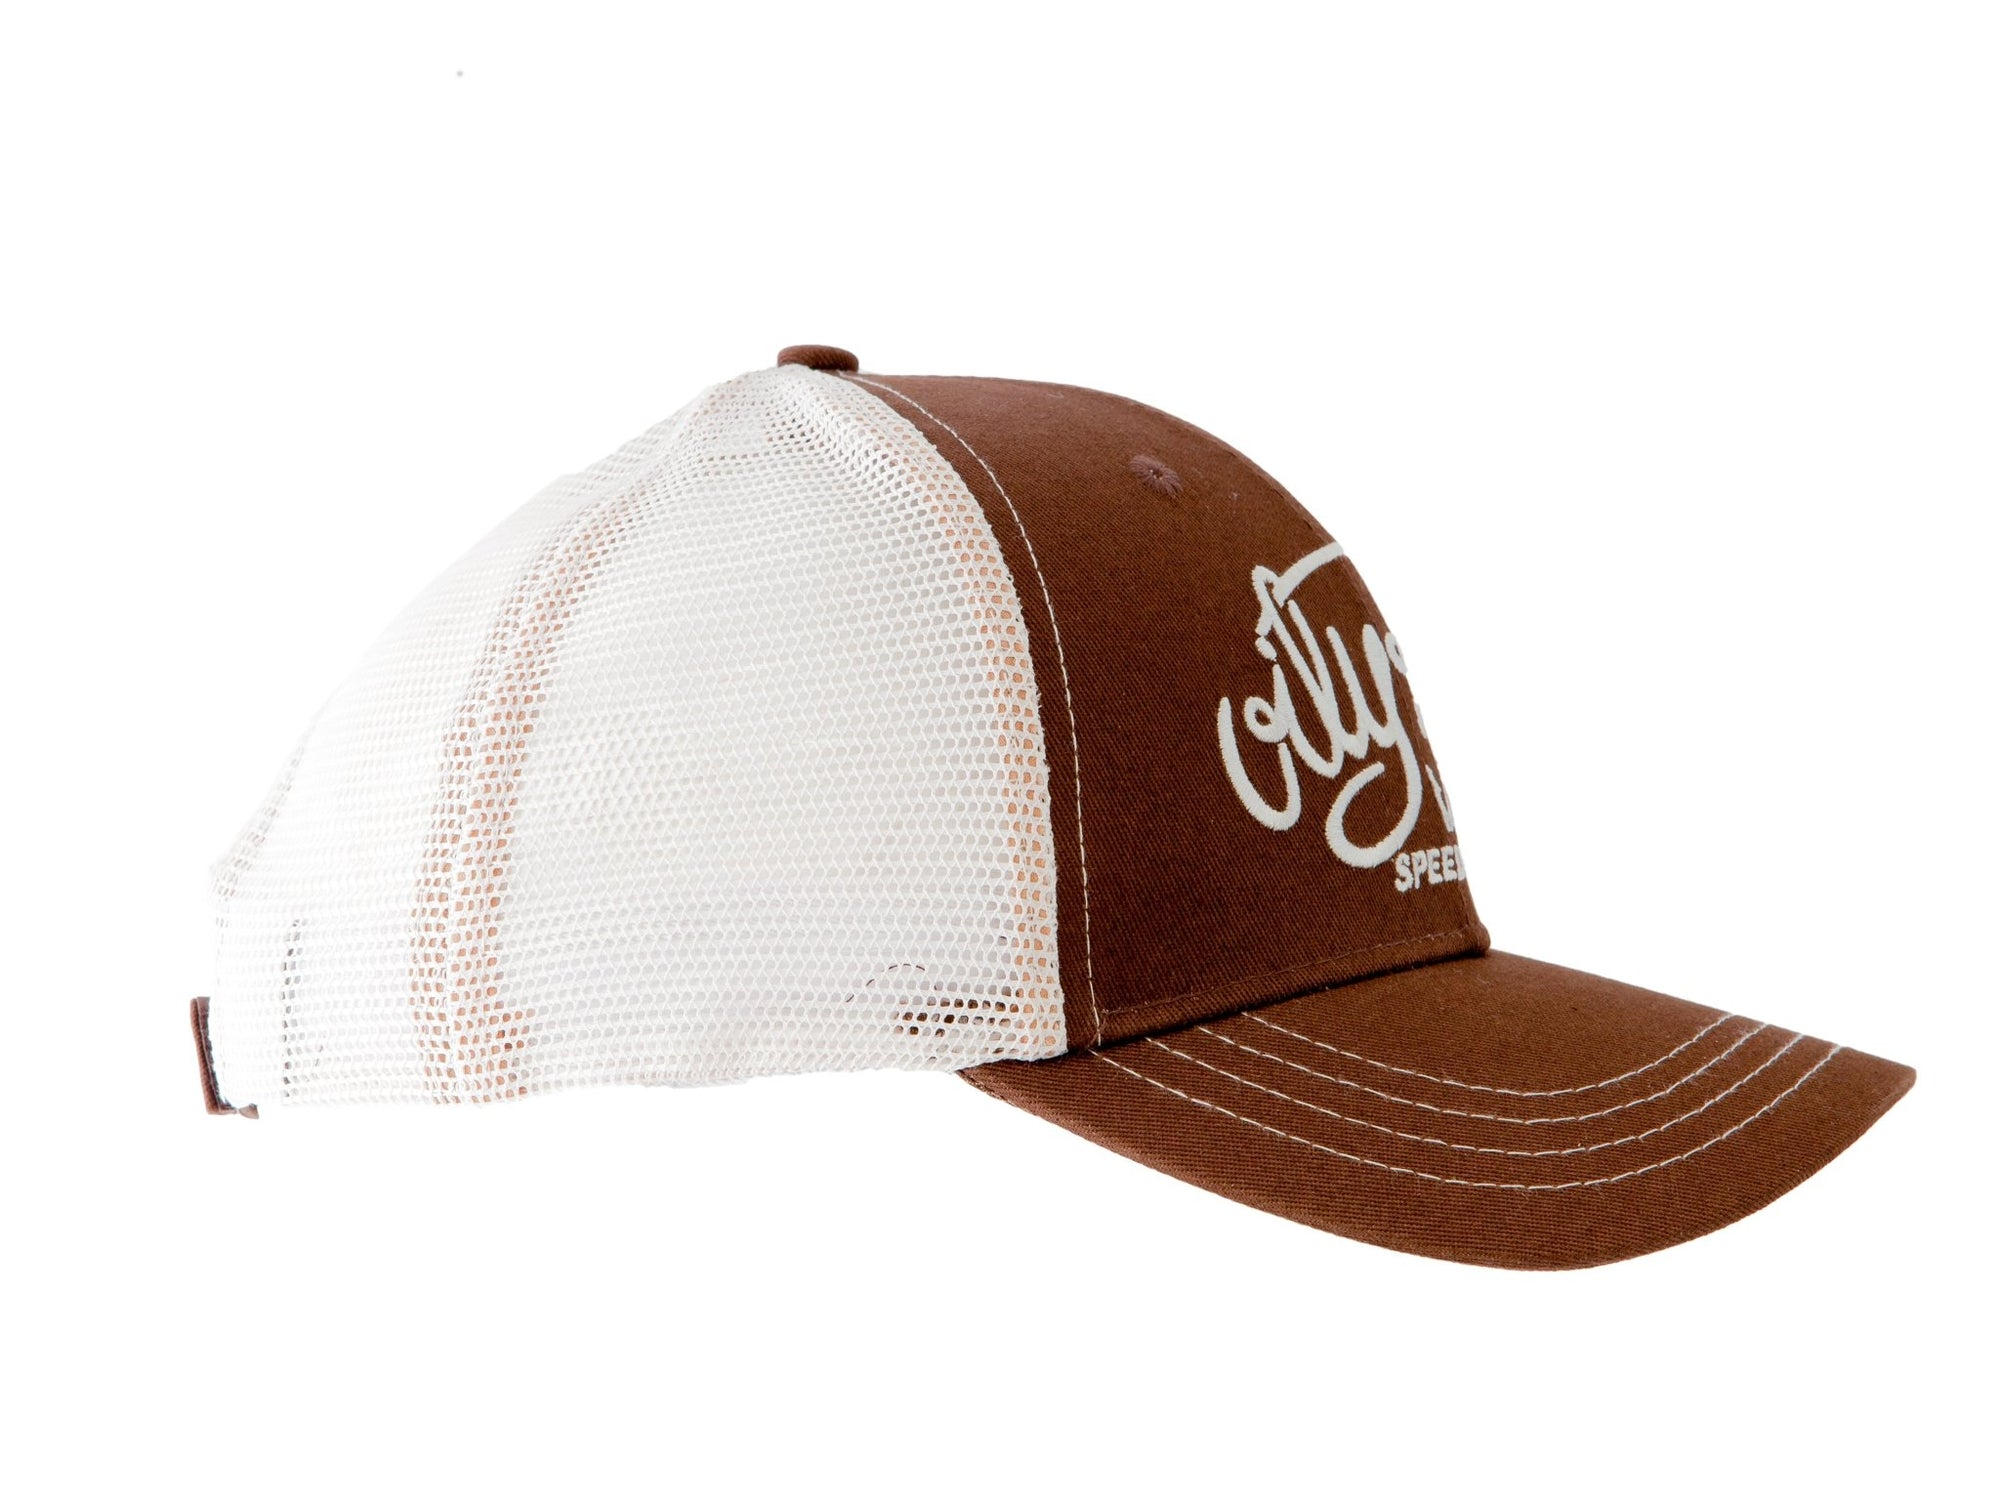 Oily Rag Clothing - Oily Rag Clothing Speed Shop Trucker Cap - Caps - Salt Flats Clothing